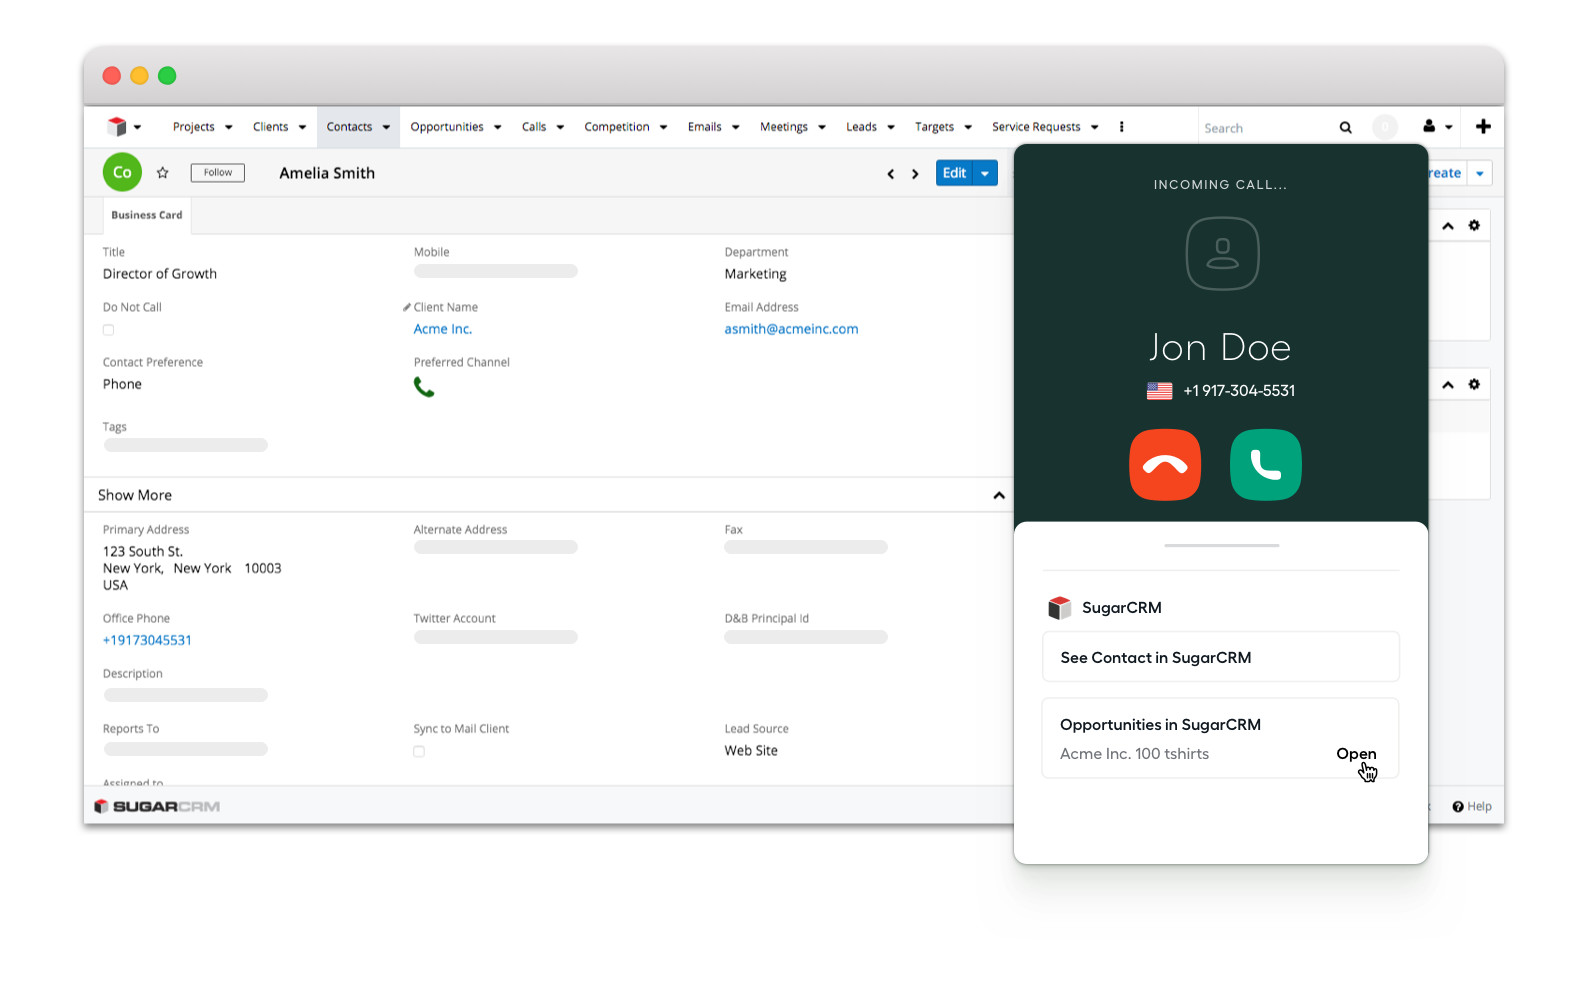 Access SugarCRM information from Aircall